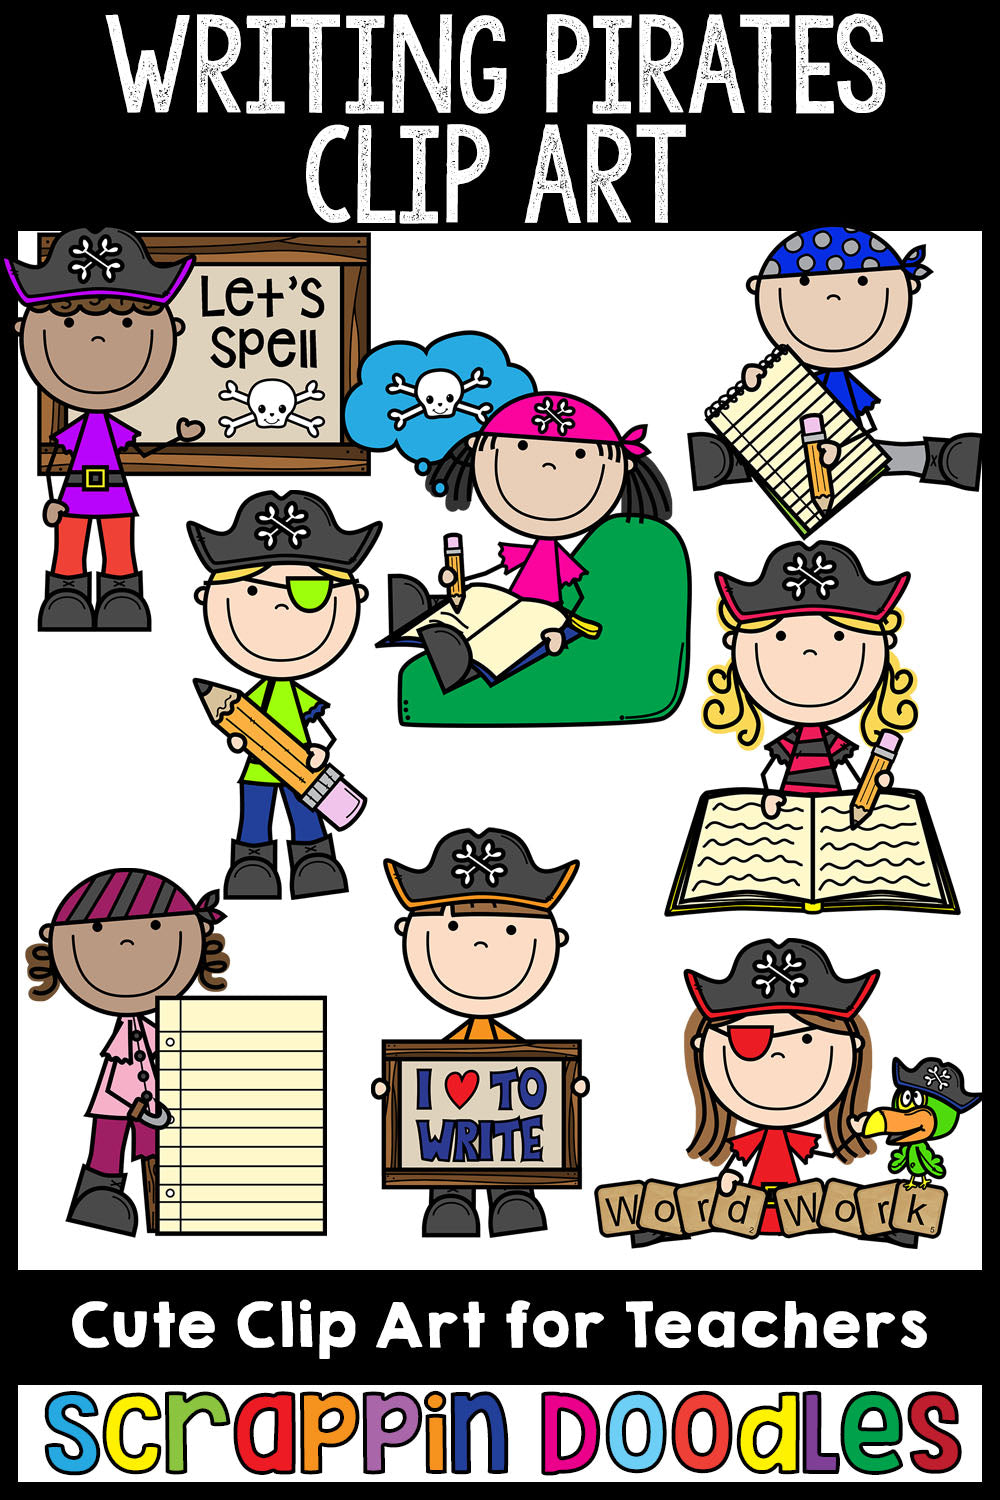 Writing Pirates Clip Art